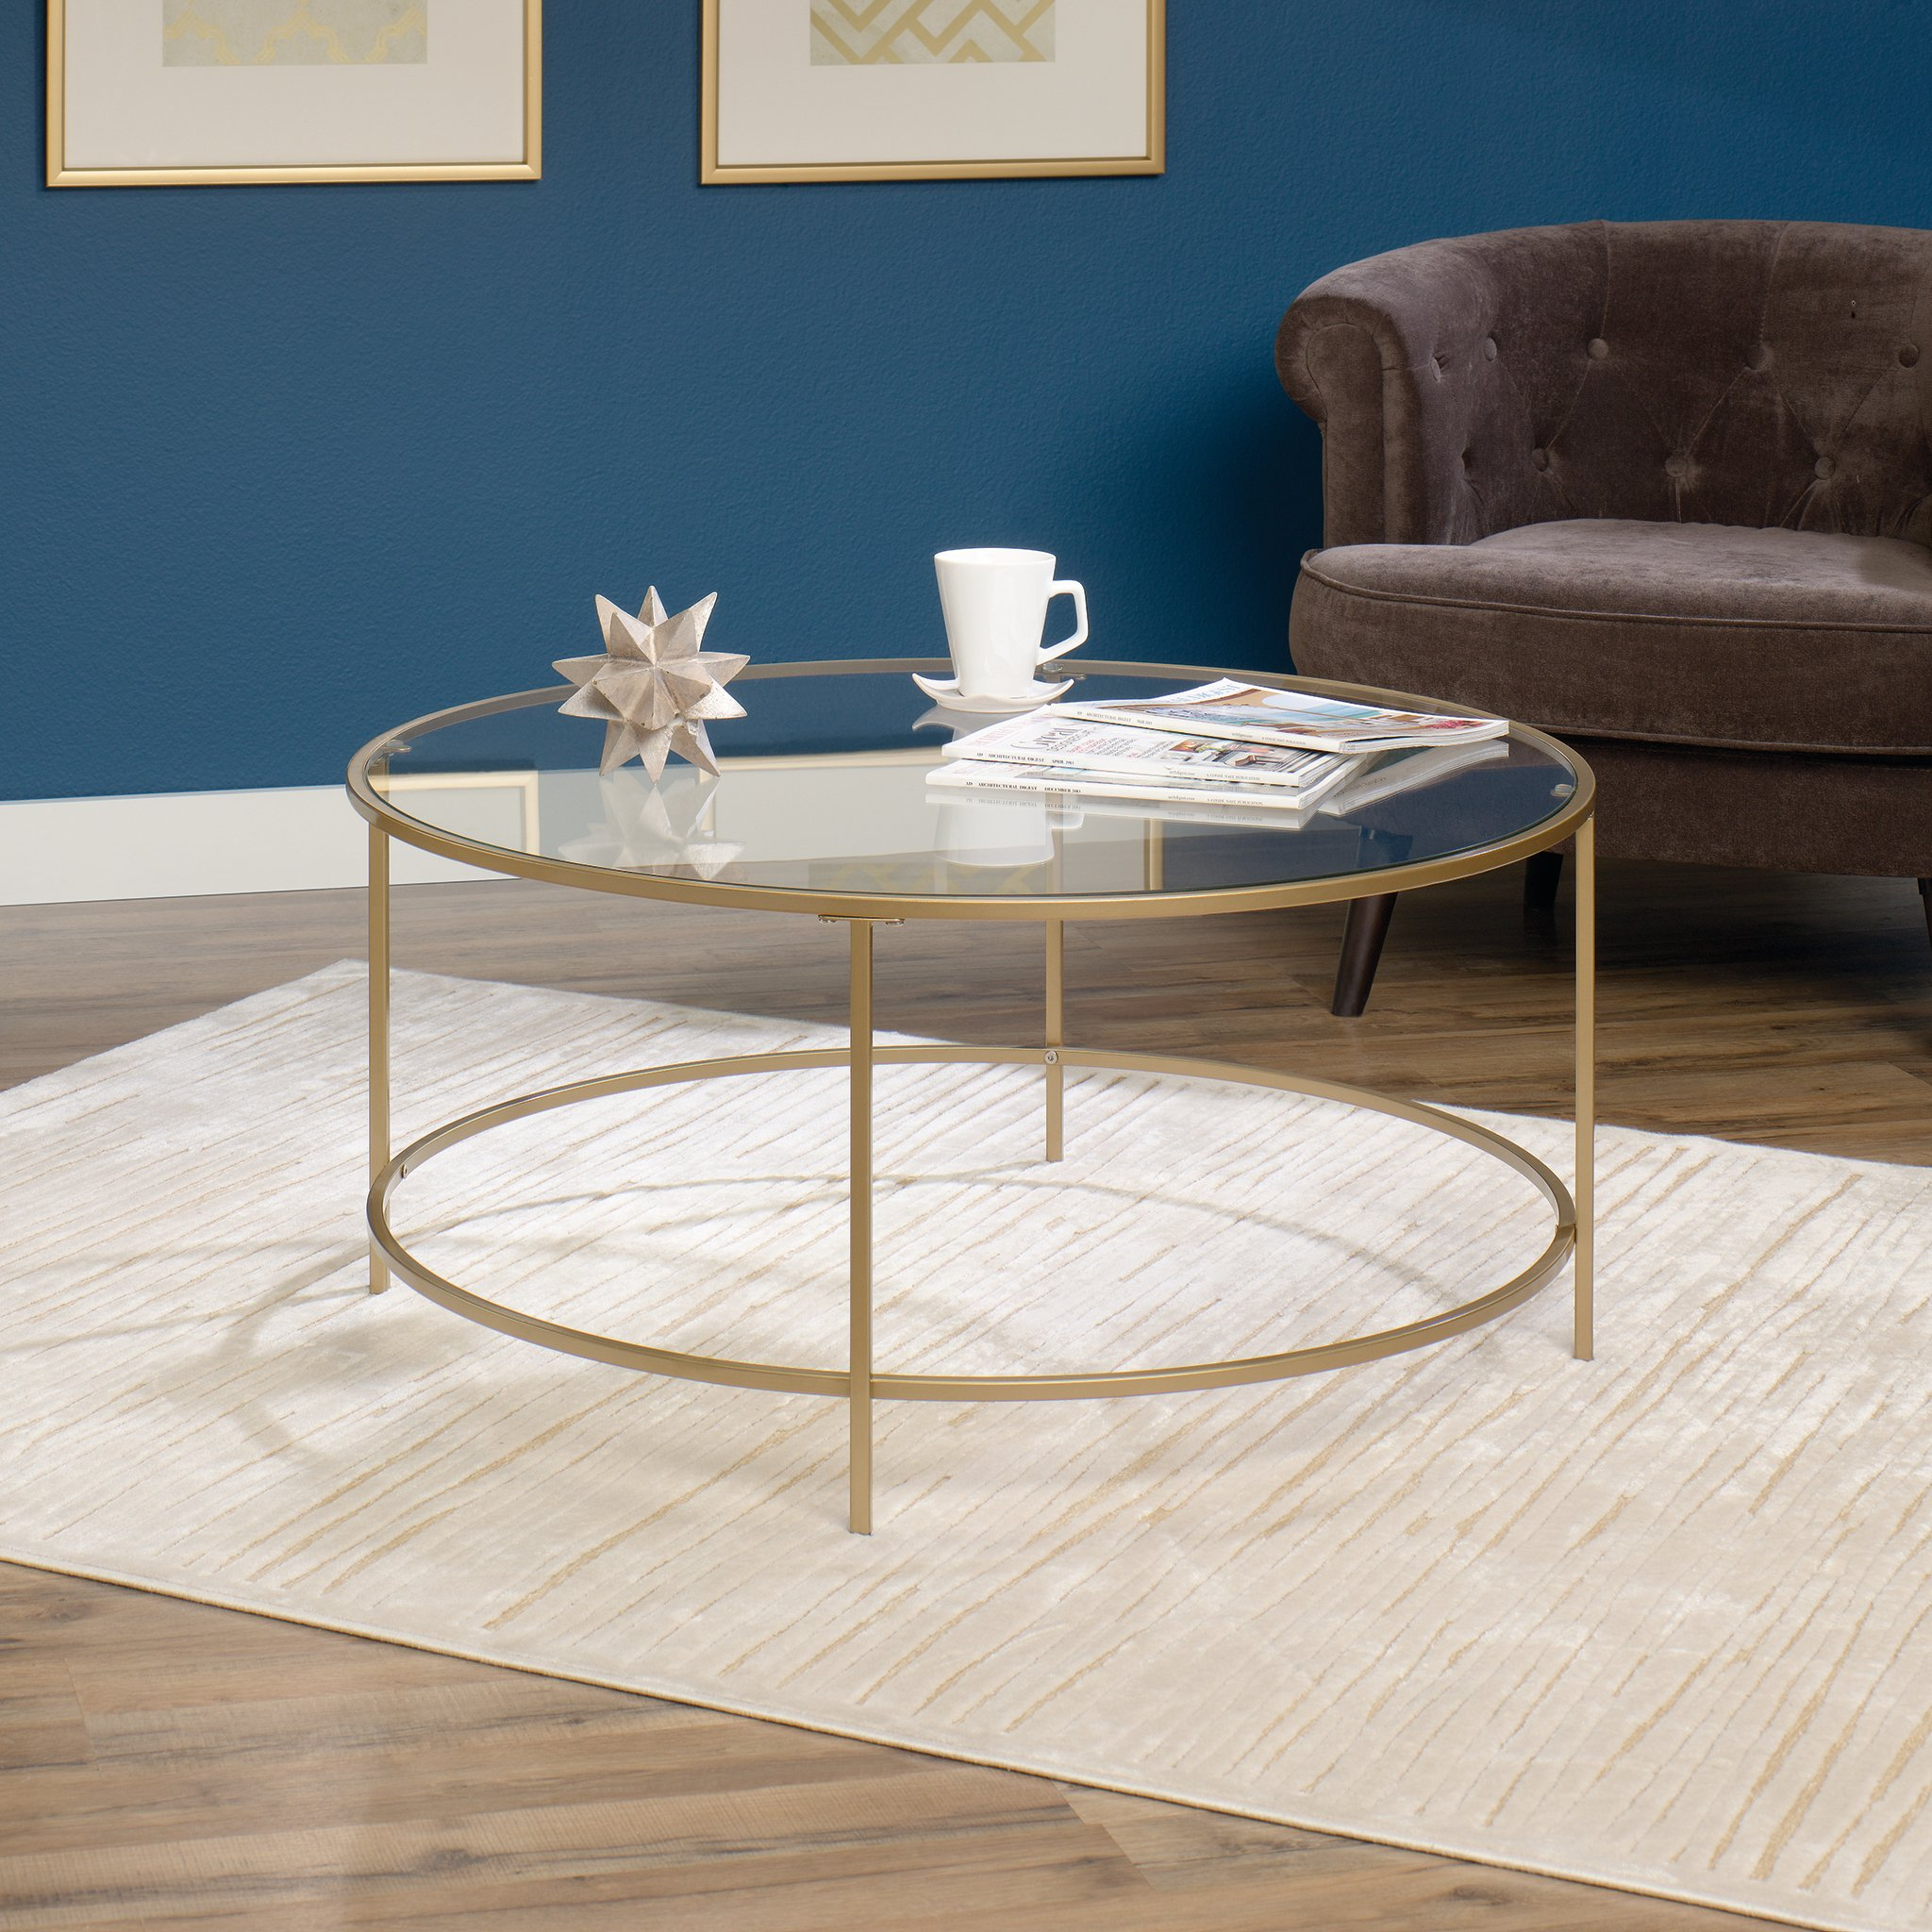 Sauder 417830 int lux coffee table round glass gold finish finished on all